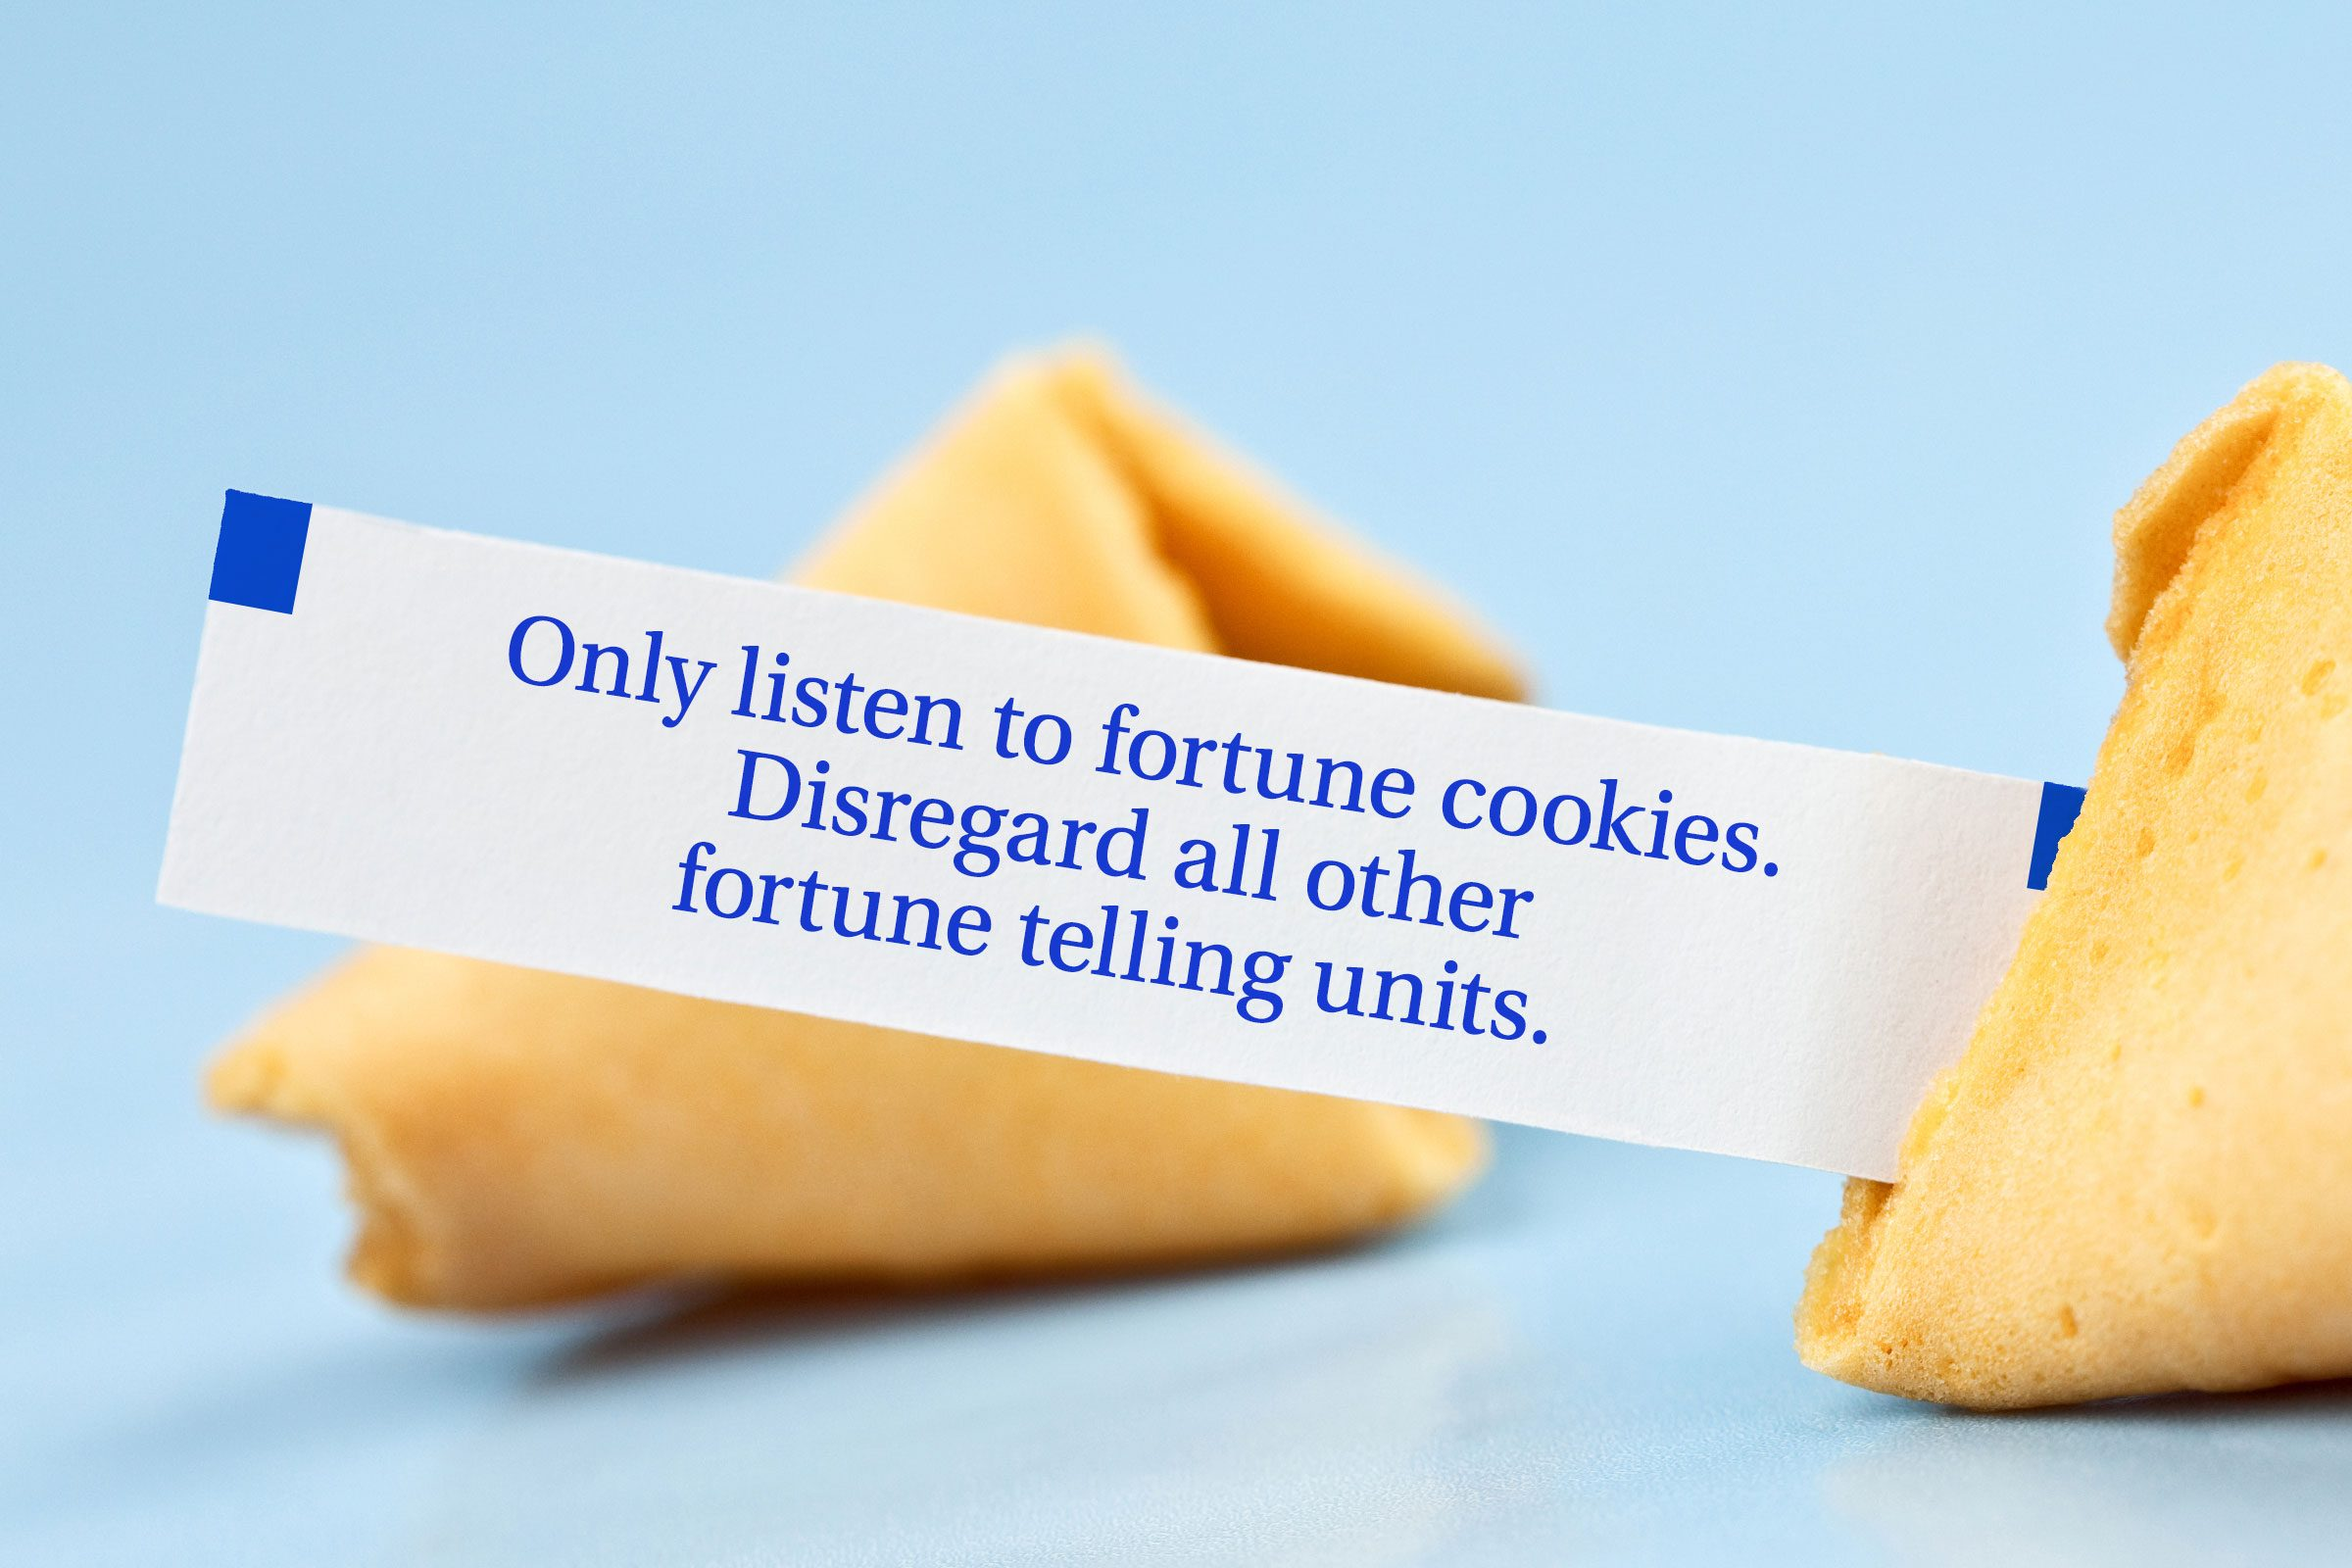 Only listen to fortune cookies. Disregard all other fortune telling units.